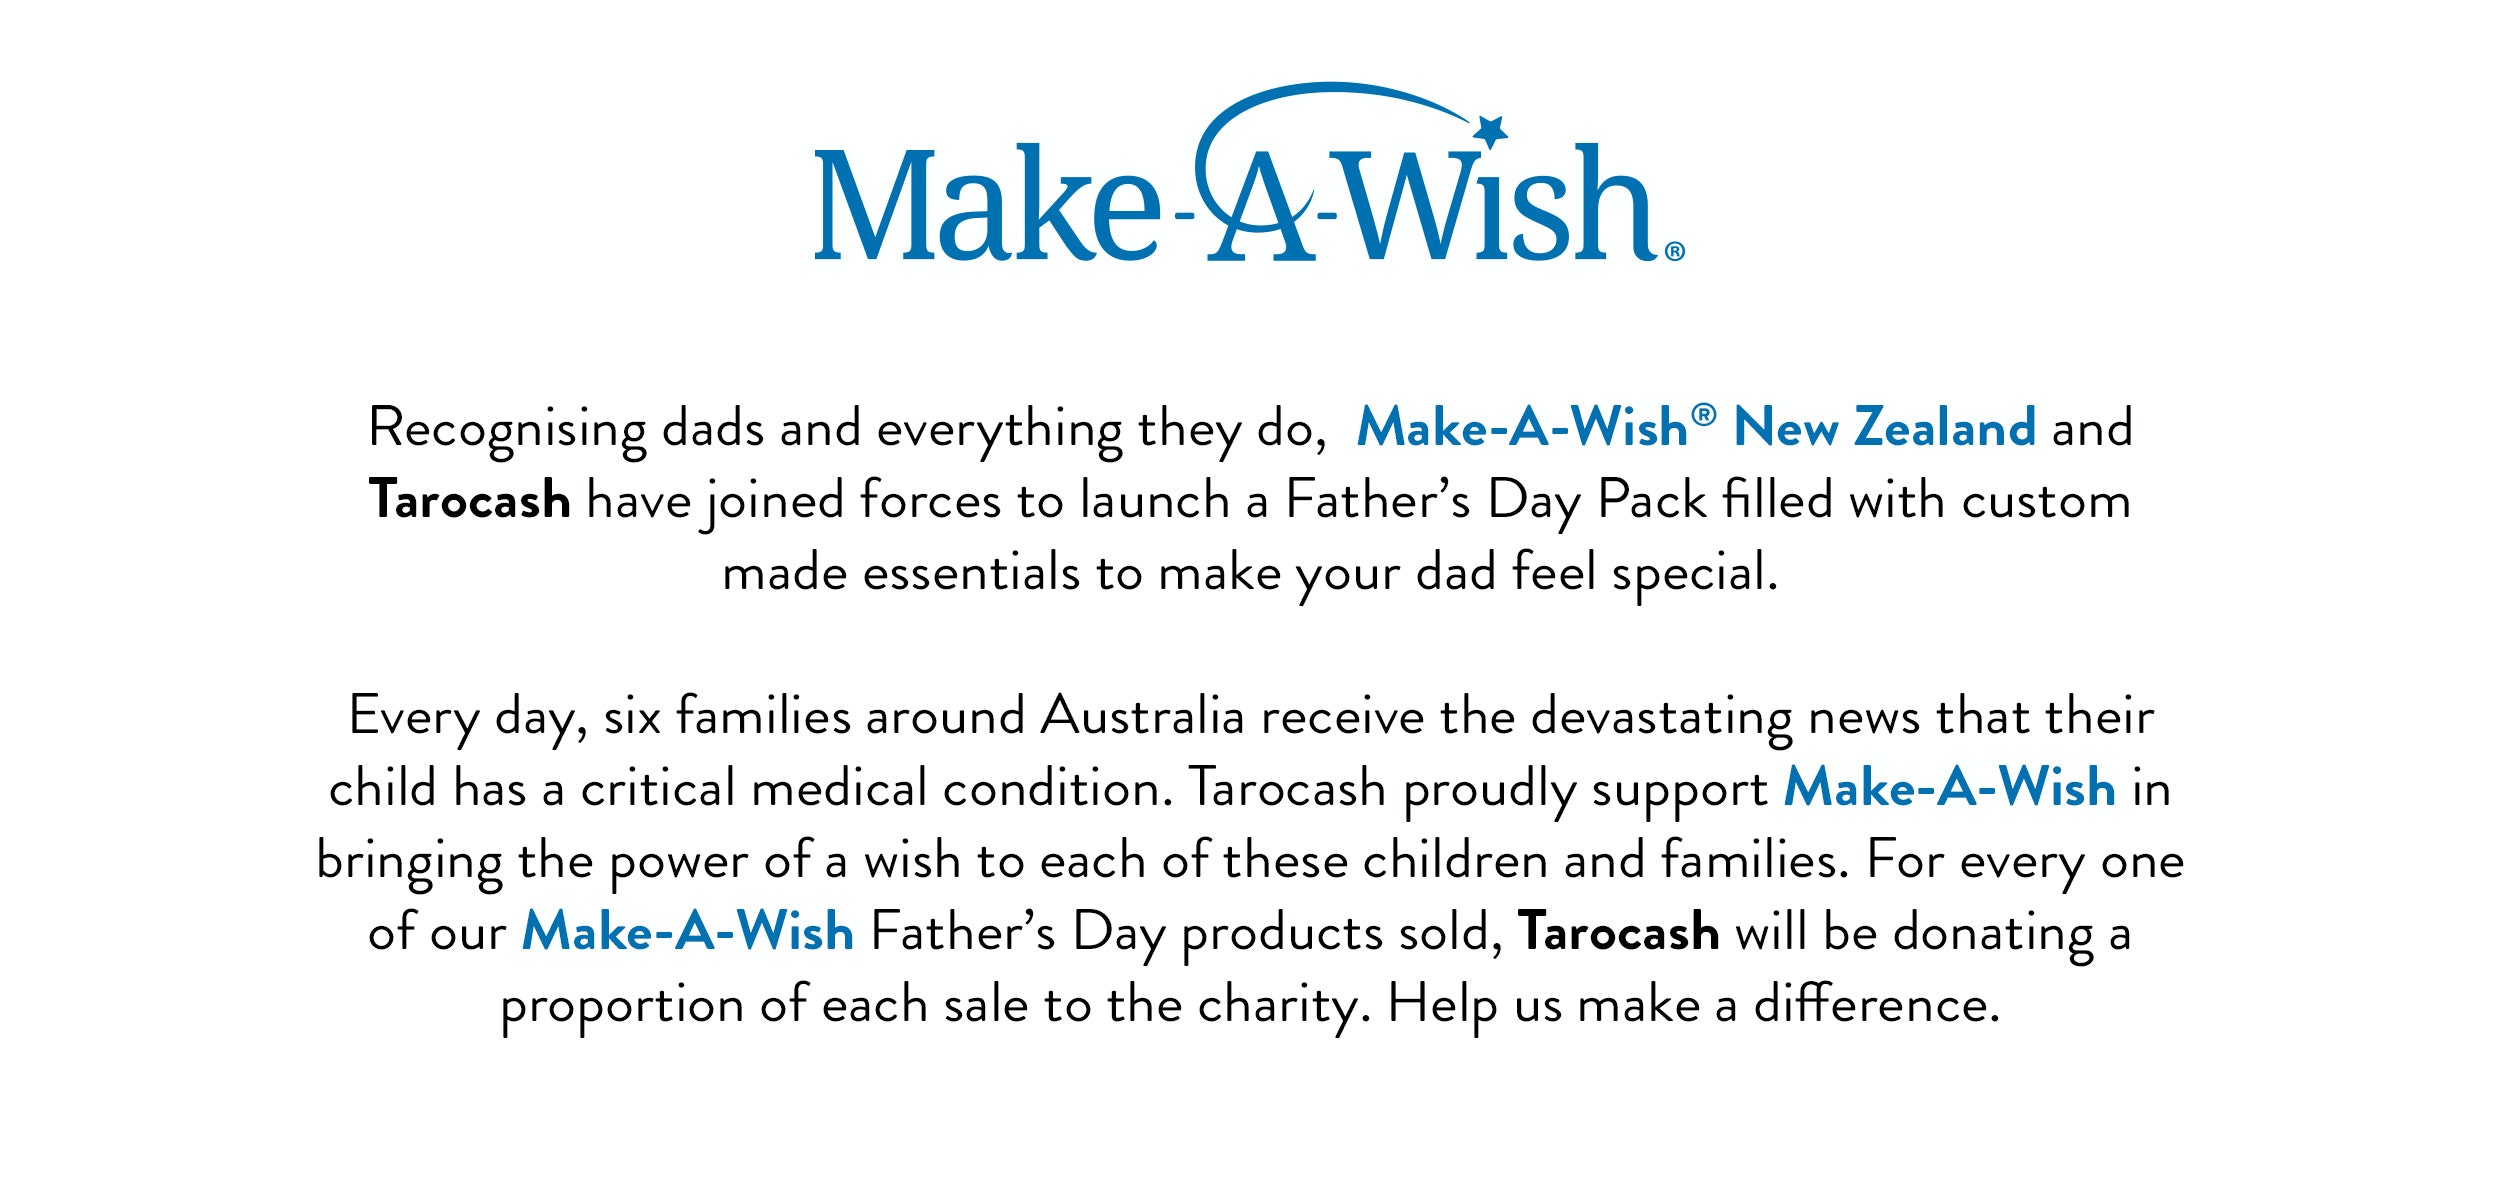 Make-a-Wish recognising Dads and everything they do